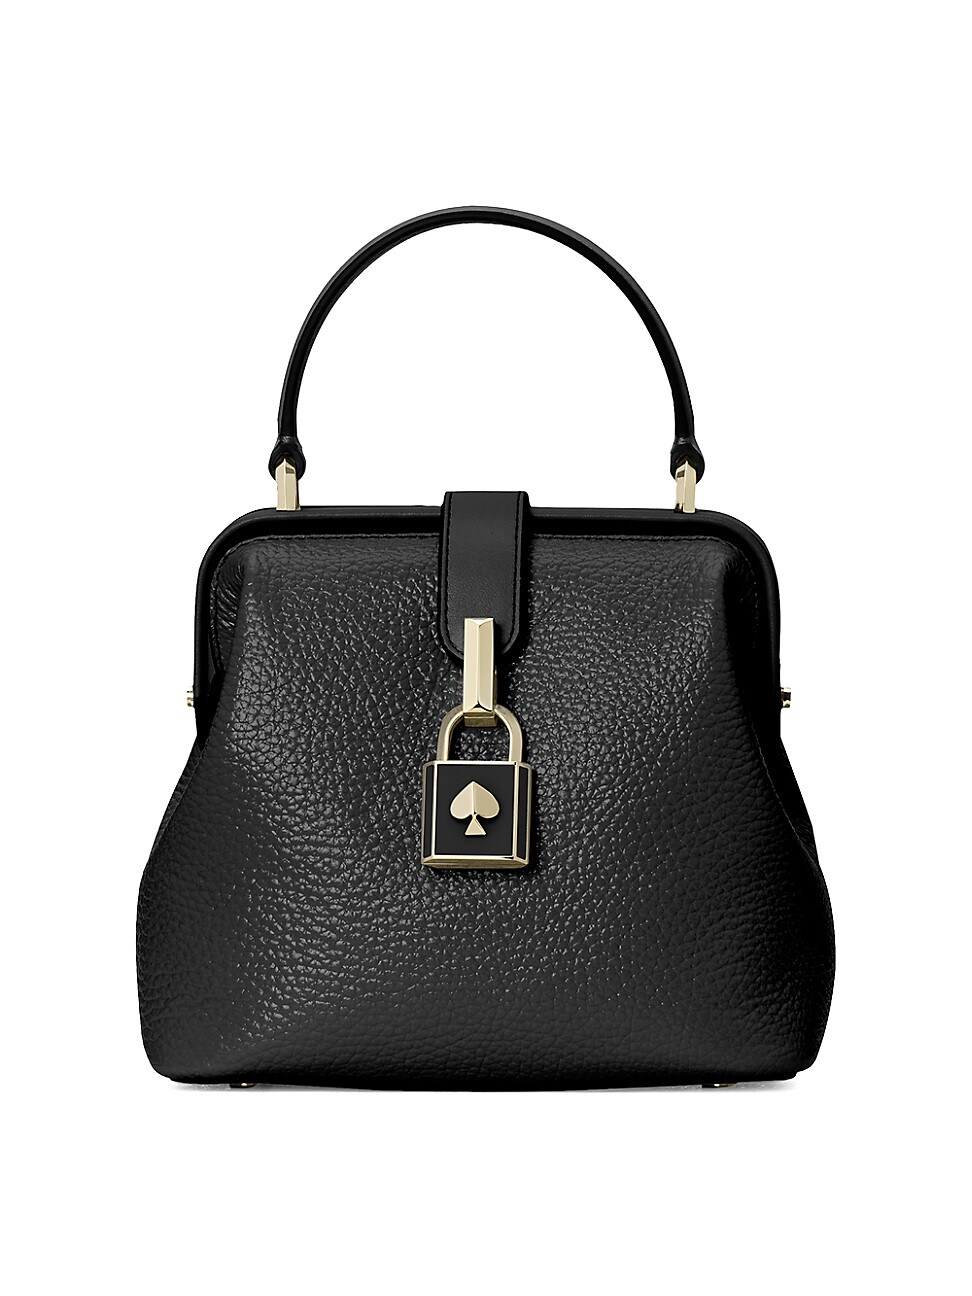 Kate Spade Women's Small Remedy Leather Top Handle Bag In Black